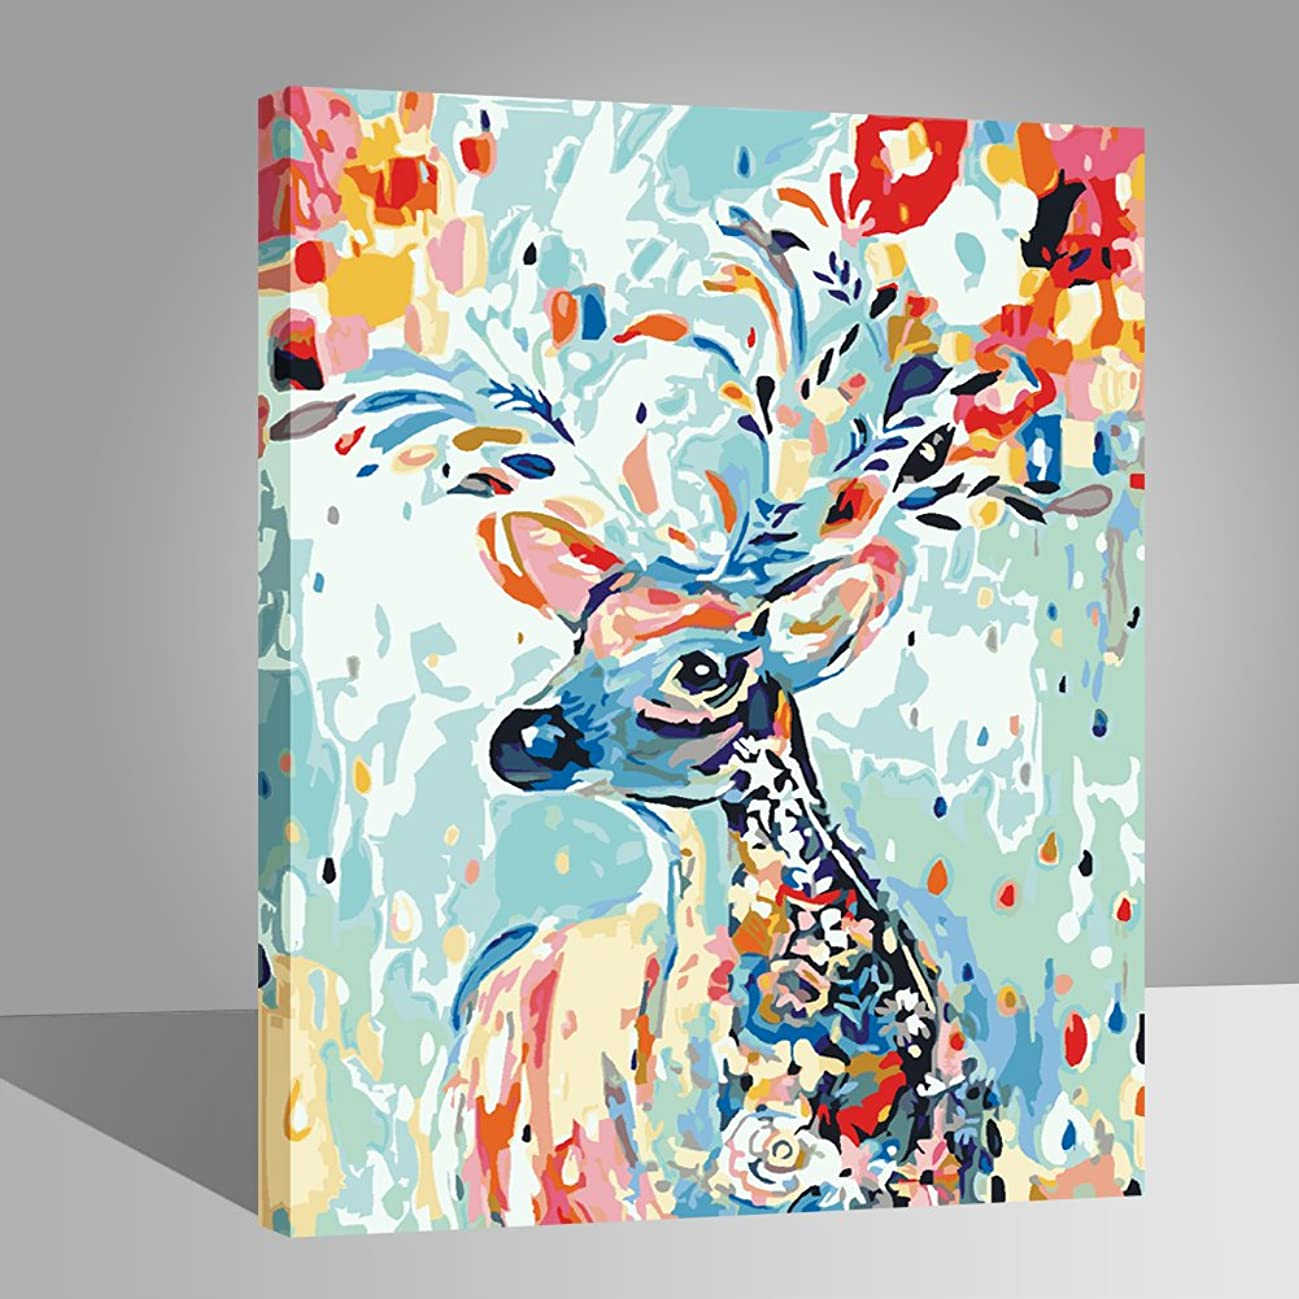 LIUDAO Paint by Number Kit Oil Painting for Kids and Adults Beginner - Rainbow Deer (16x20 inch,Wooden Framed)